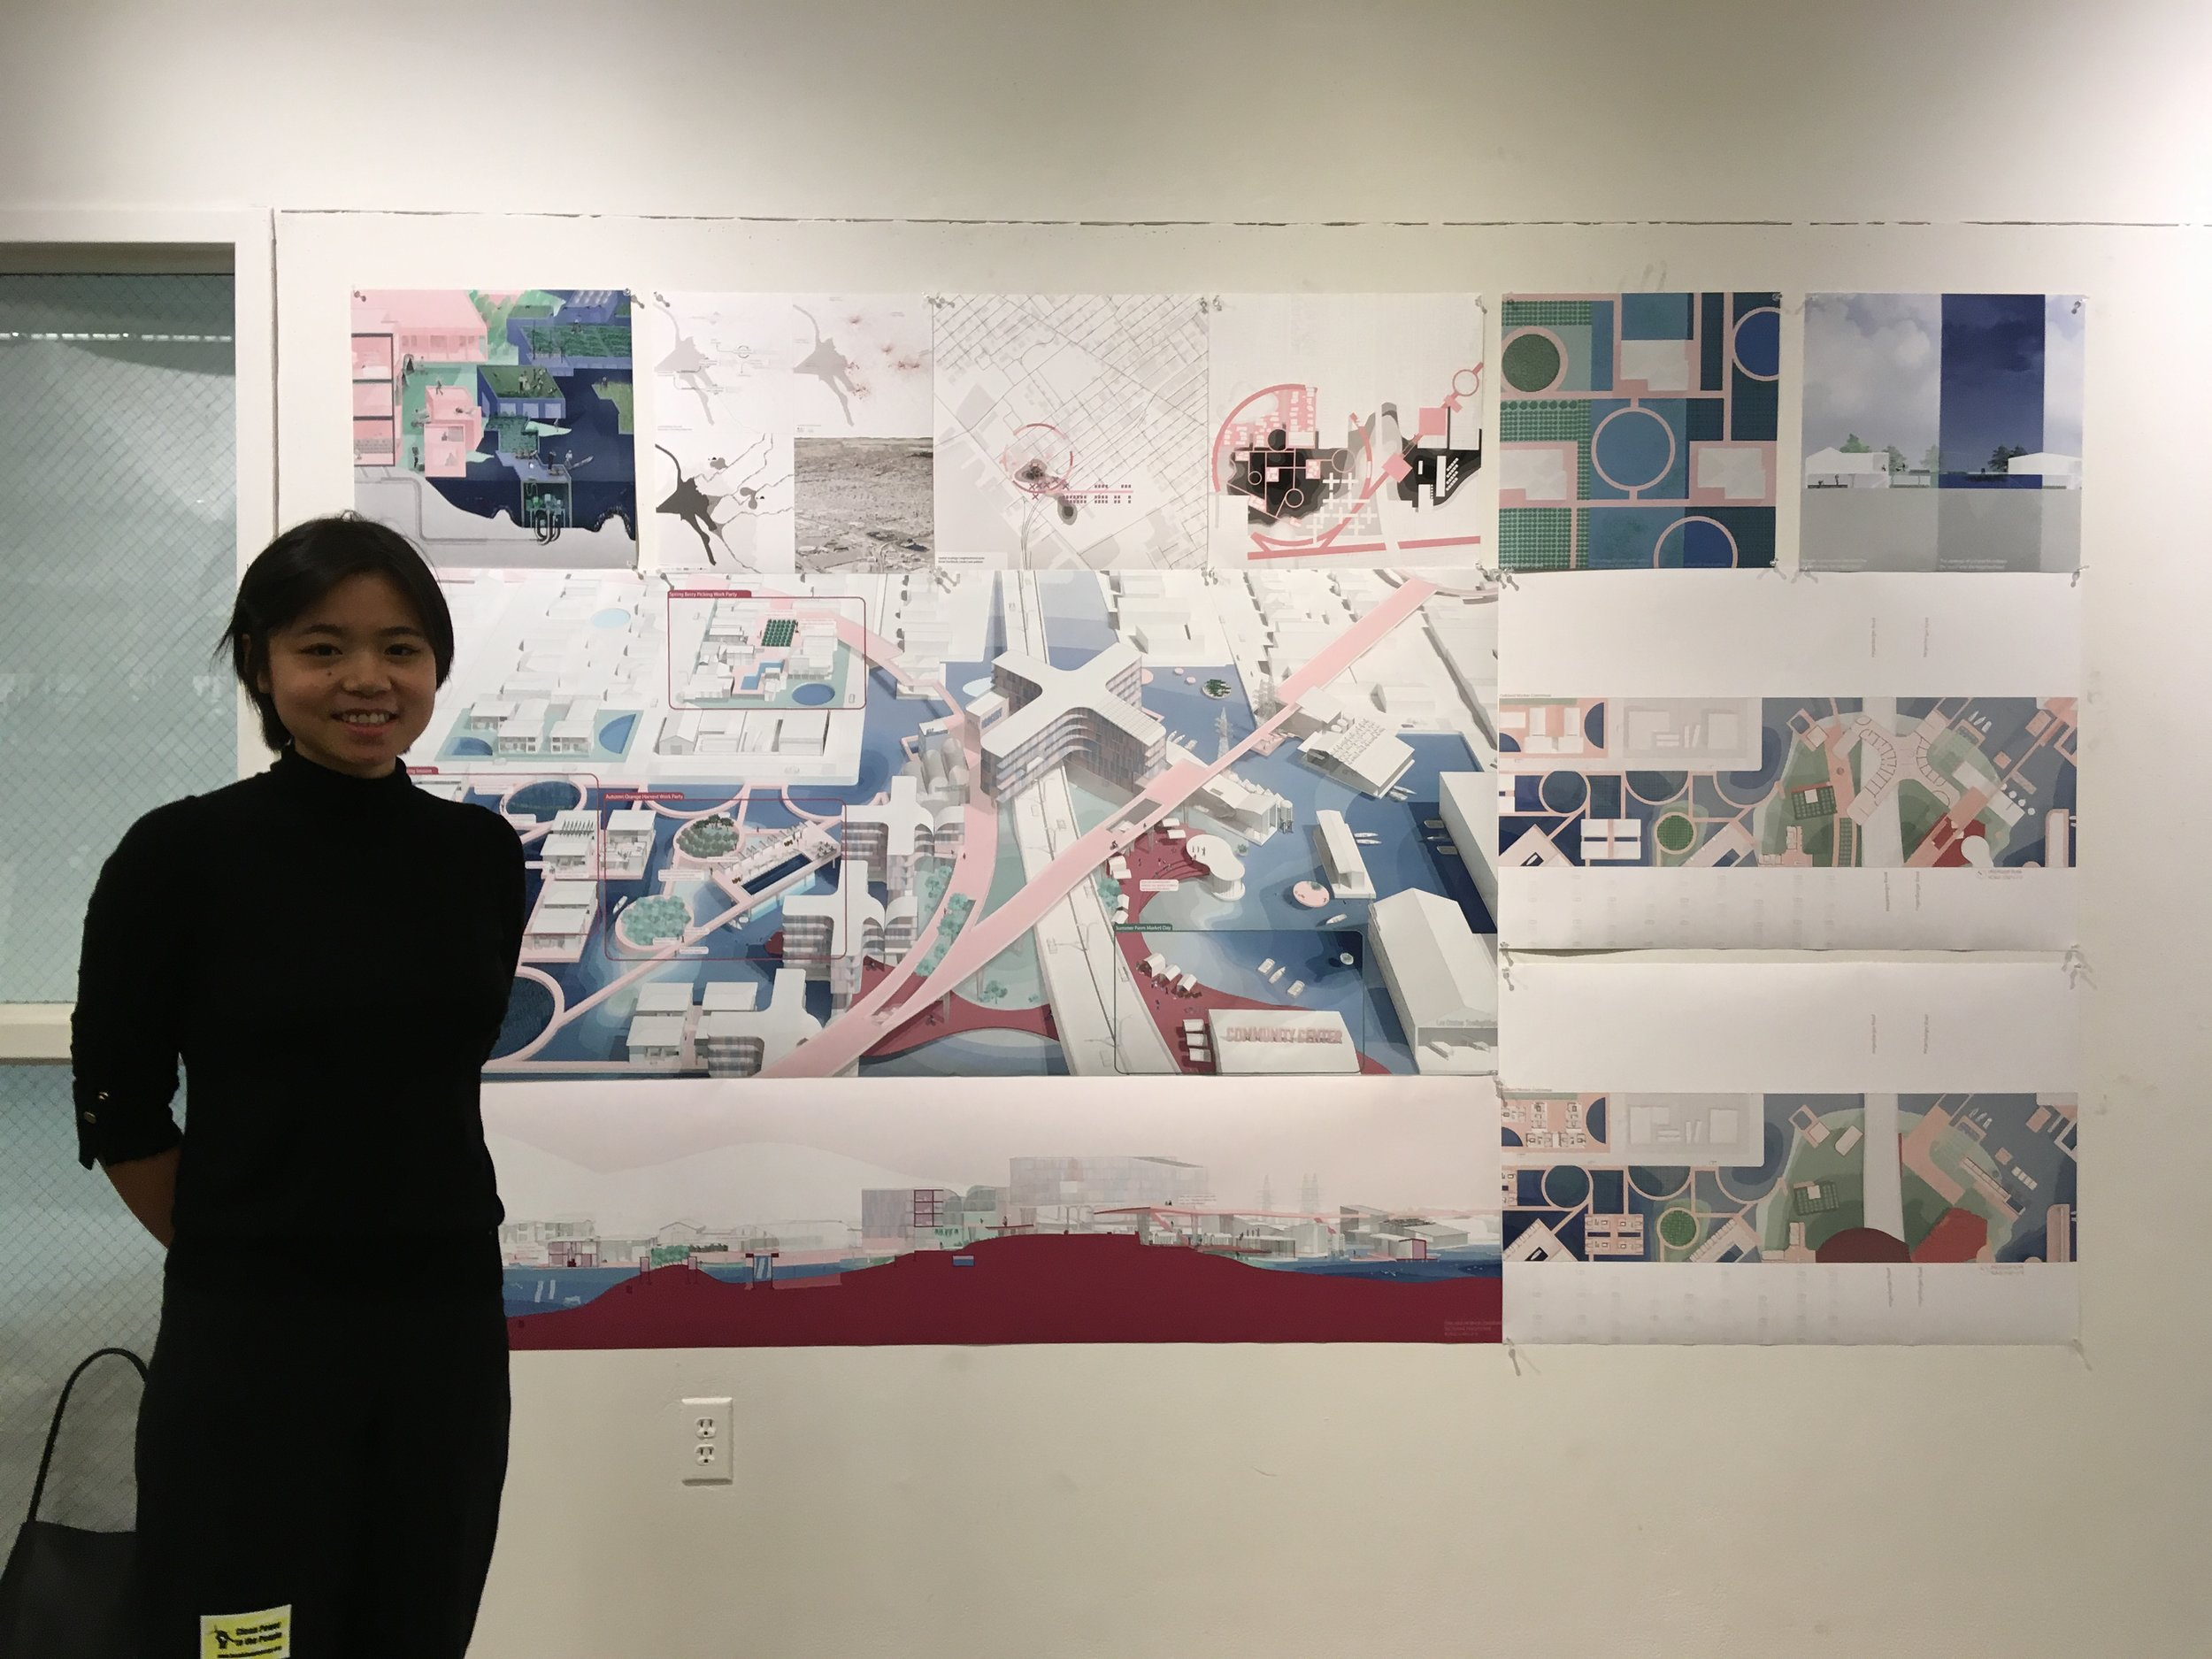 """""""Oakland Worker Commune."""" Emma Luo's project enables community members to own and profit from shared resources and skills organized around seawater farming, clean energy, clean water and building retrofits."""